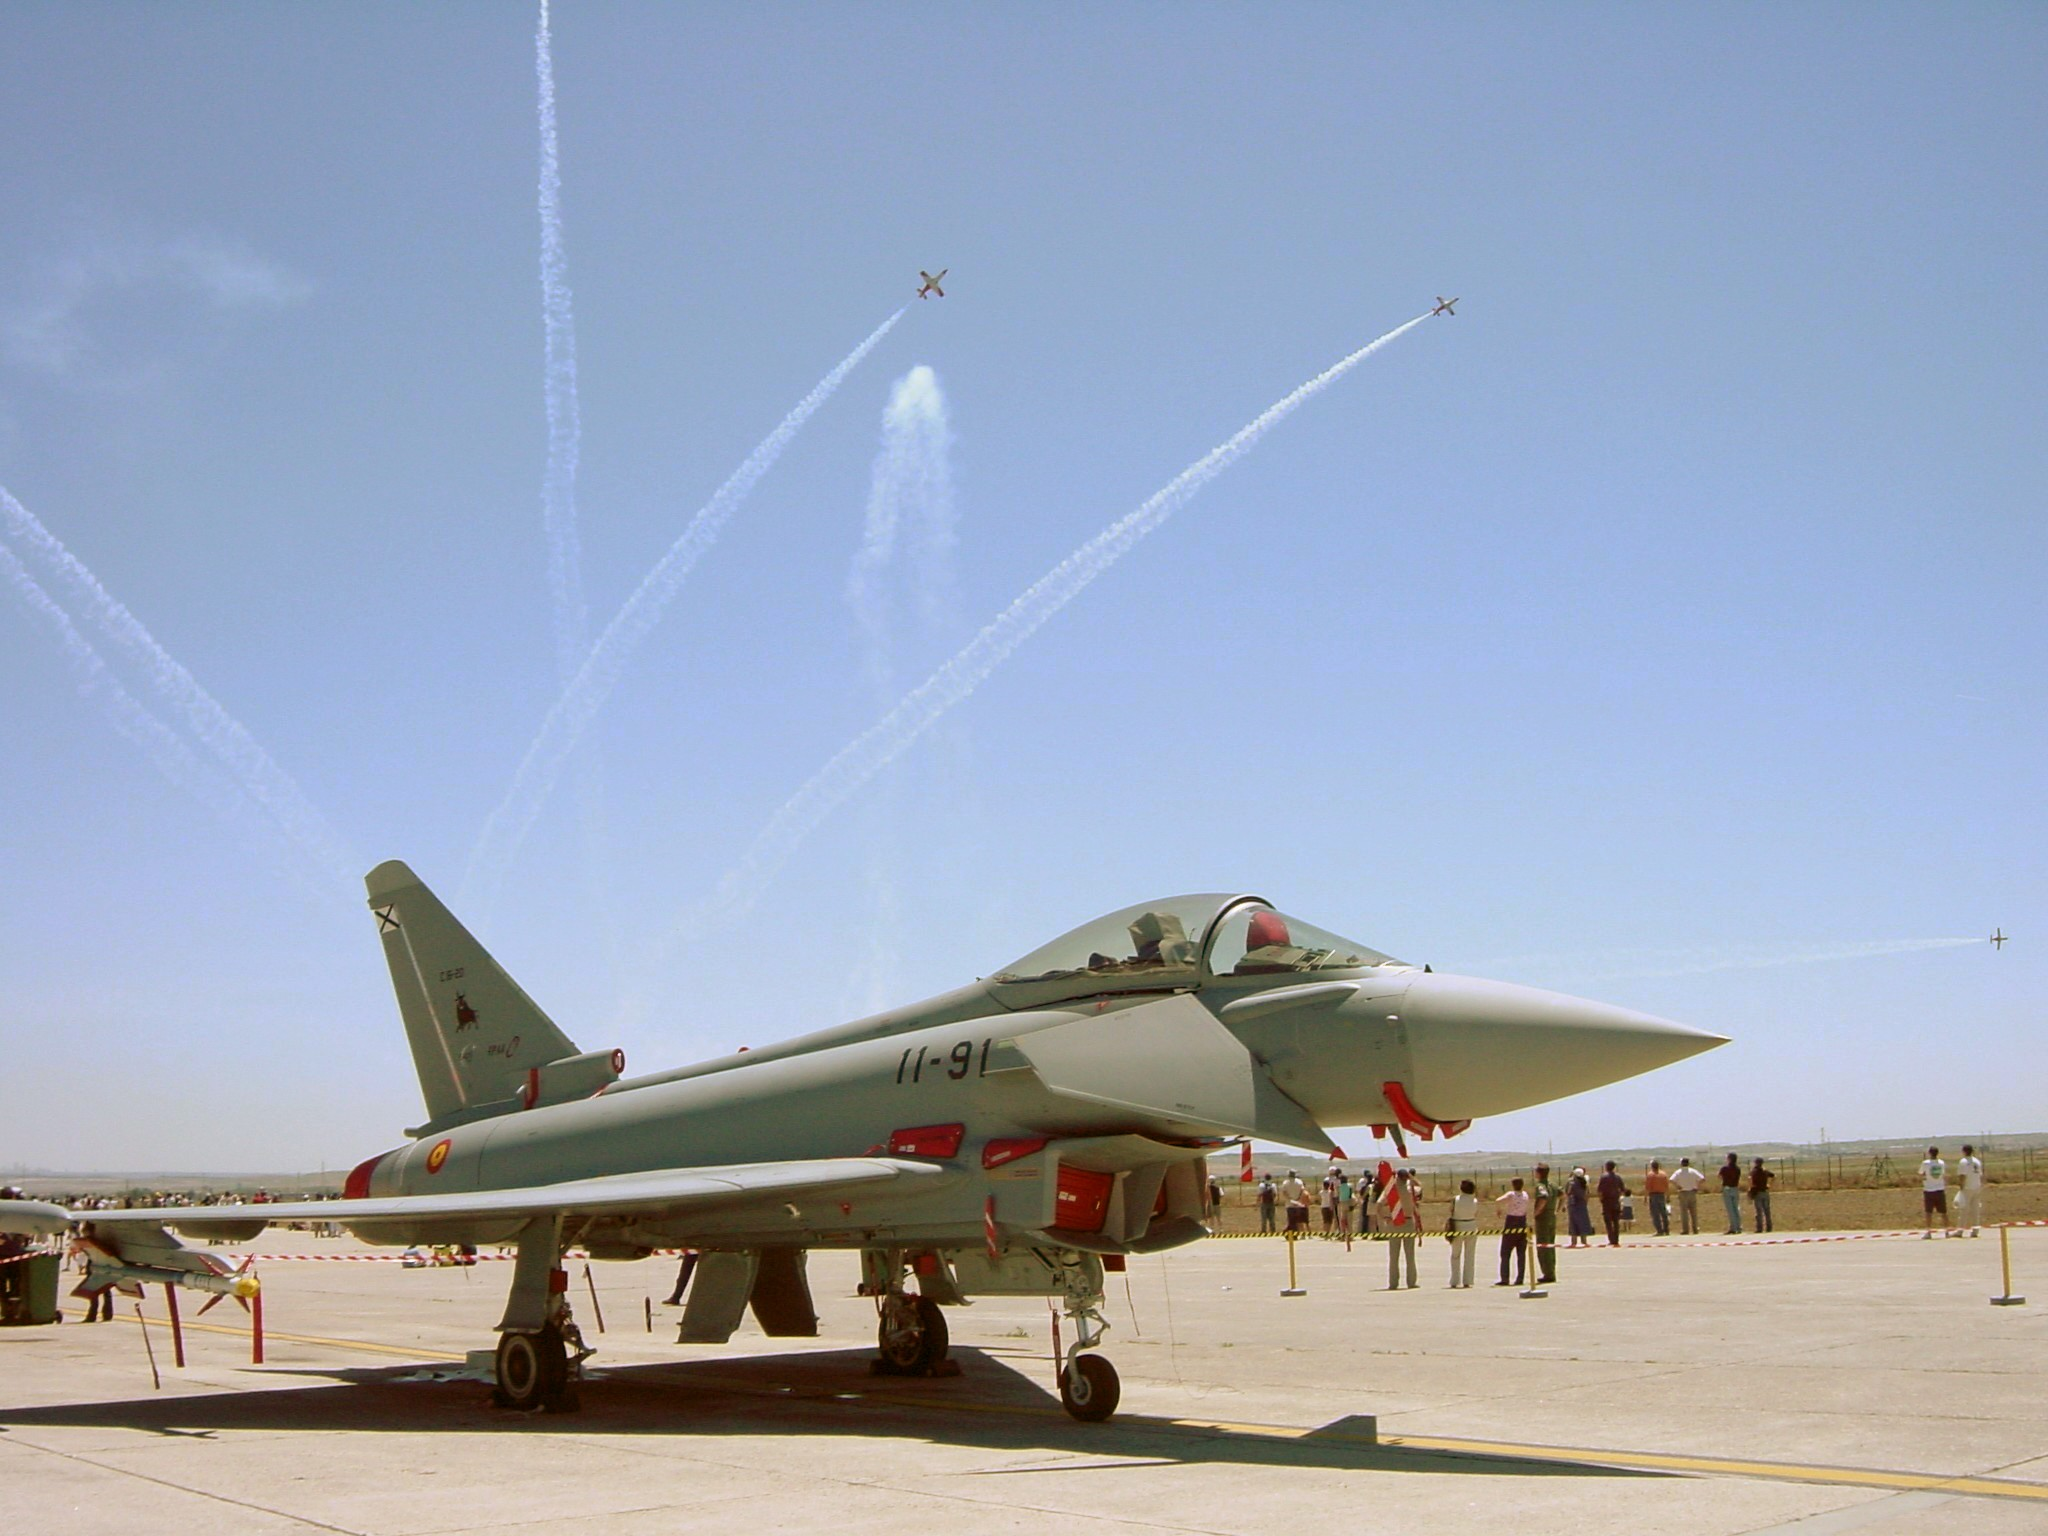 Descripción: http://upload.wikimedia.org/wikipedia/commons/b/b2/Eurofighter_Getafe_edit.jpg